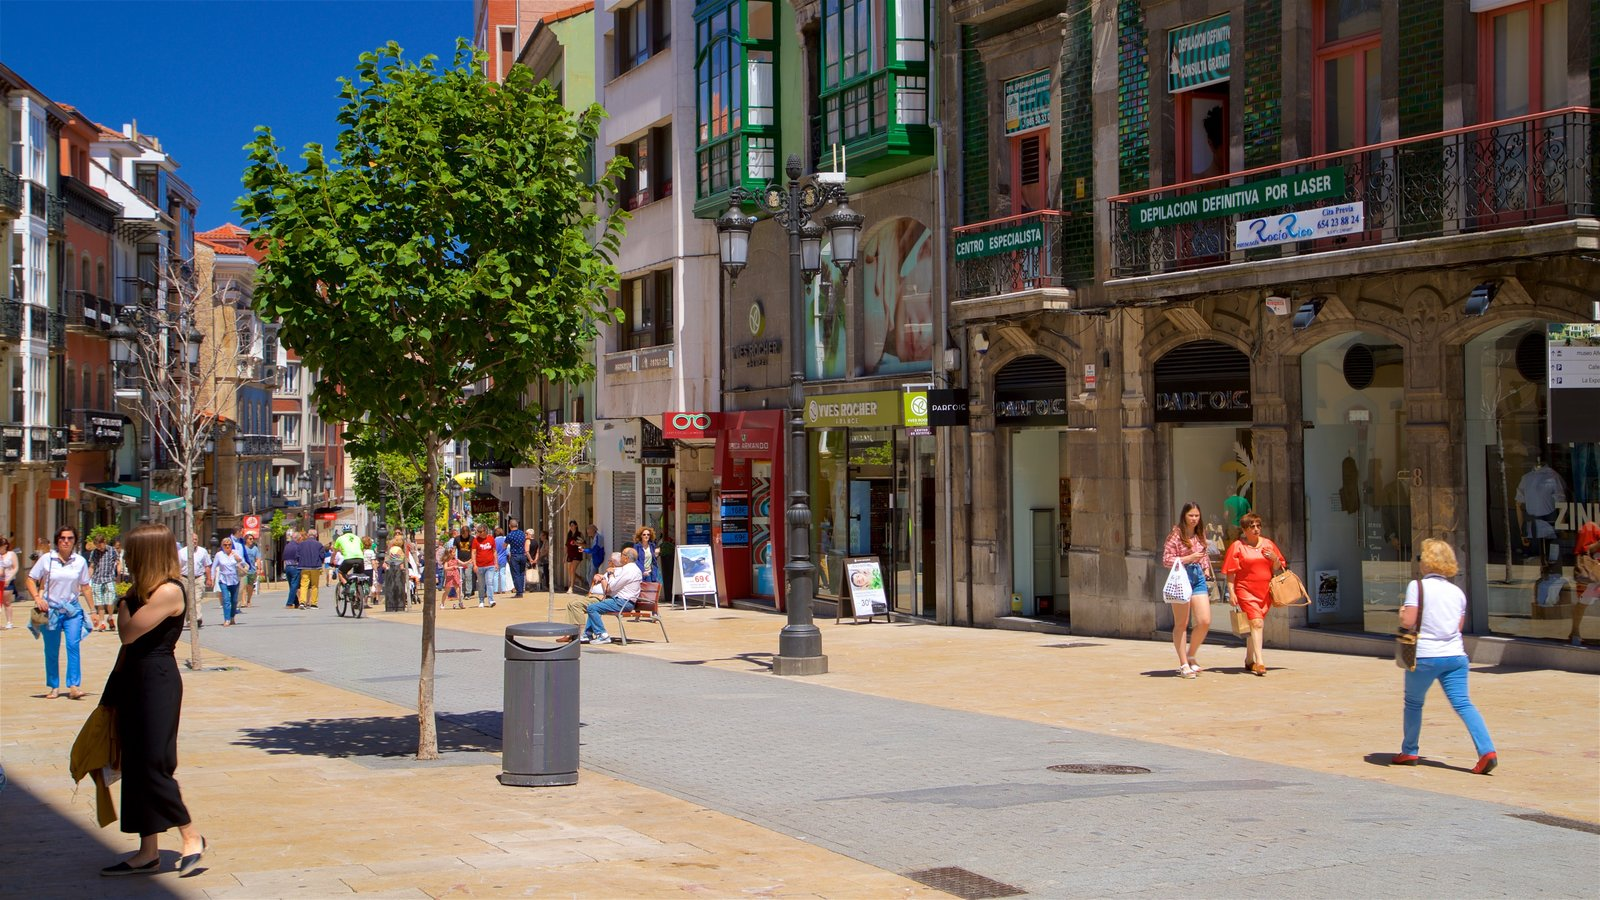 Aviles featuring heritage elements, street scenes and a city